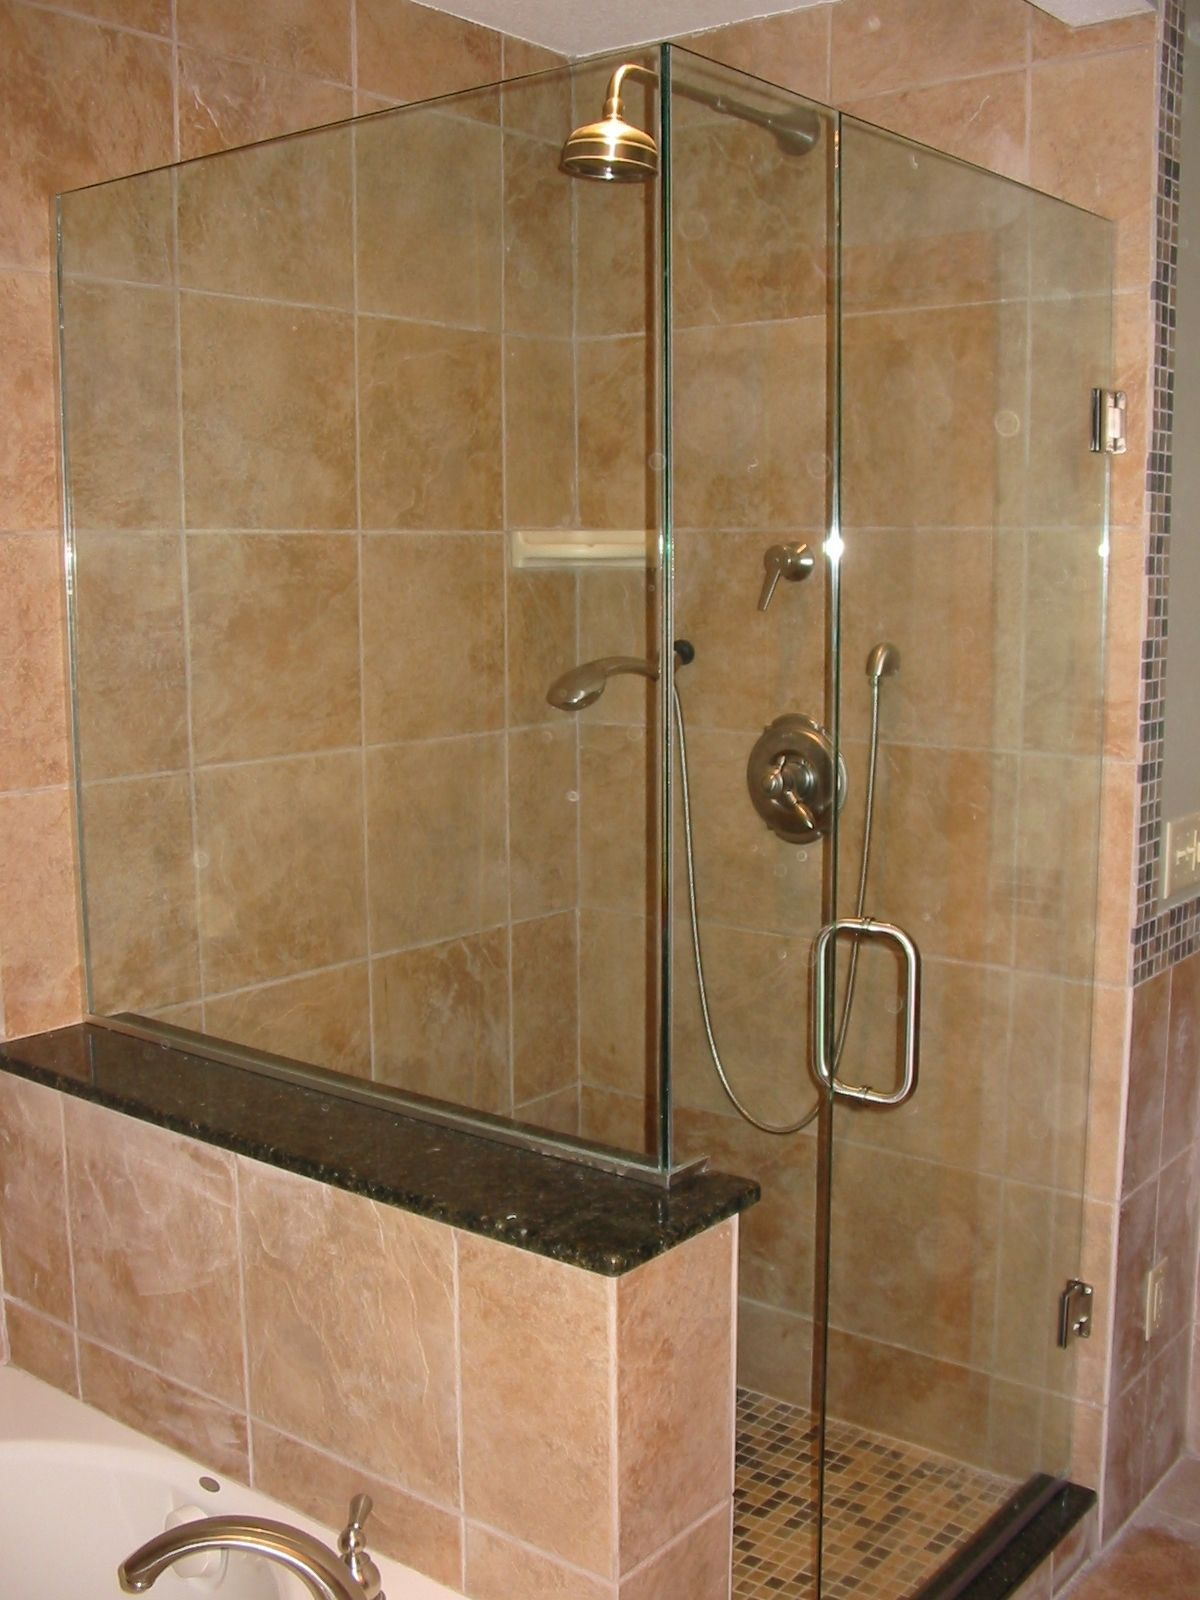 more shower bloomingdale frameless door abc doors custom showers glass